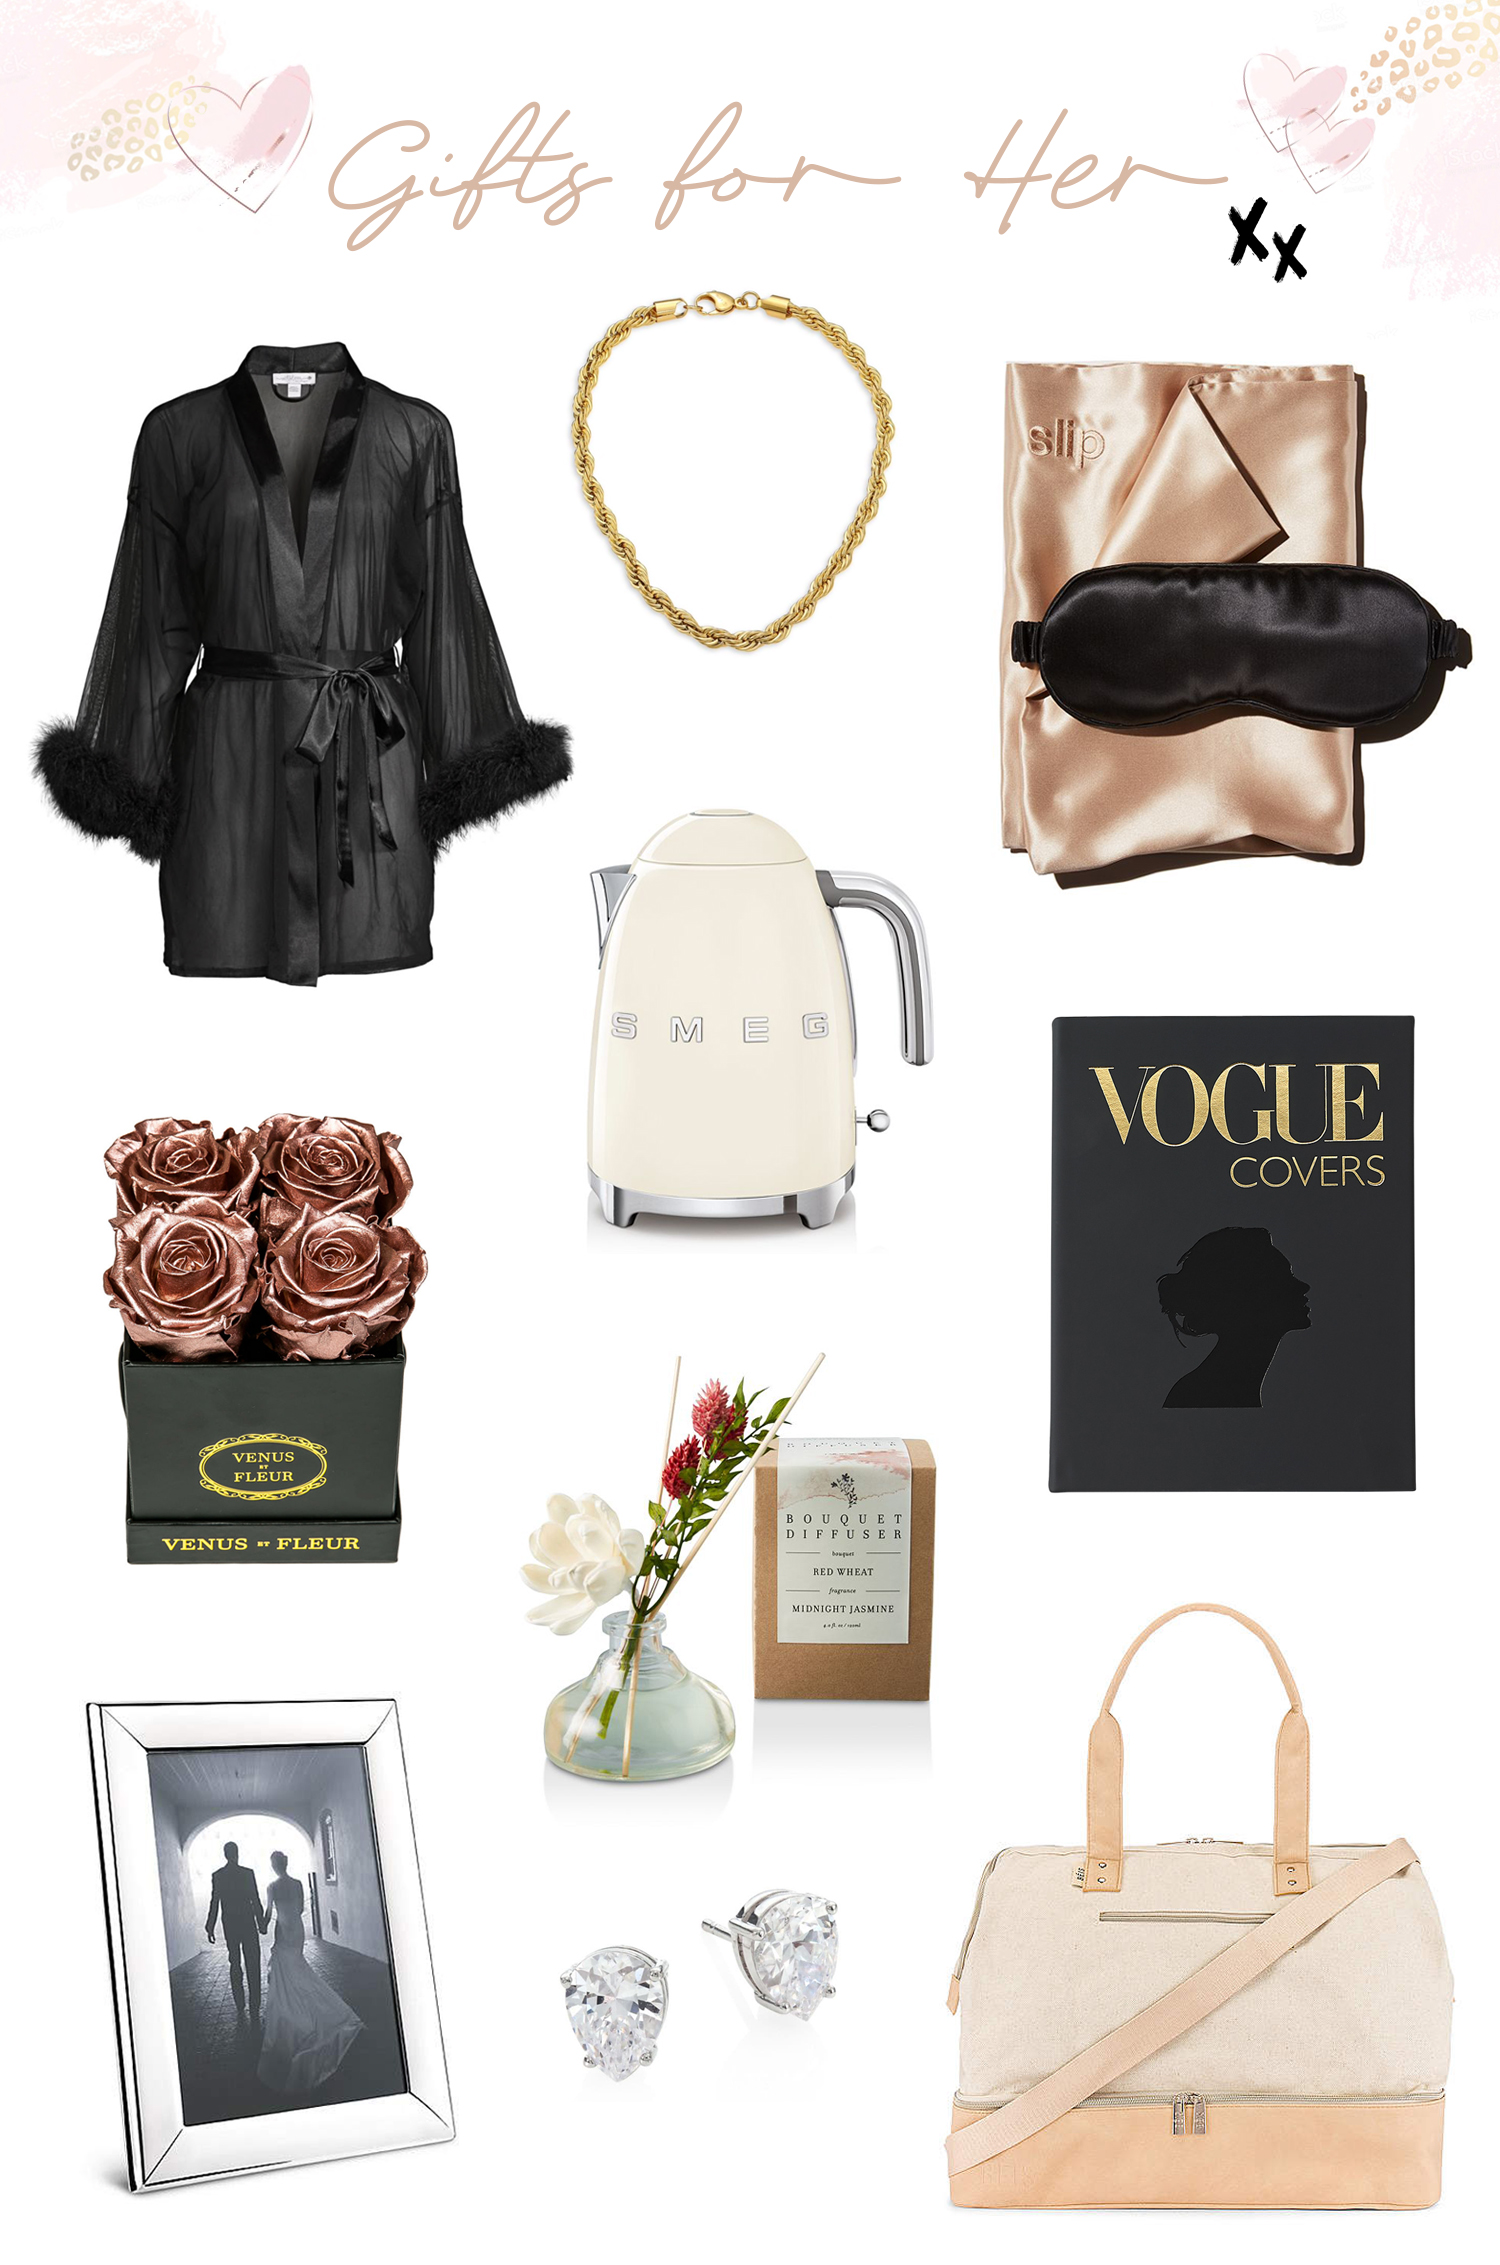 valentines day gift guide for her 2020